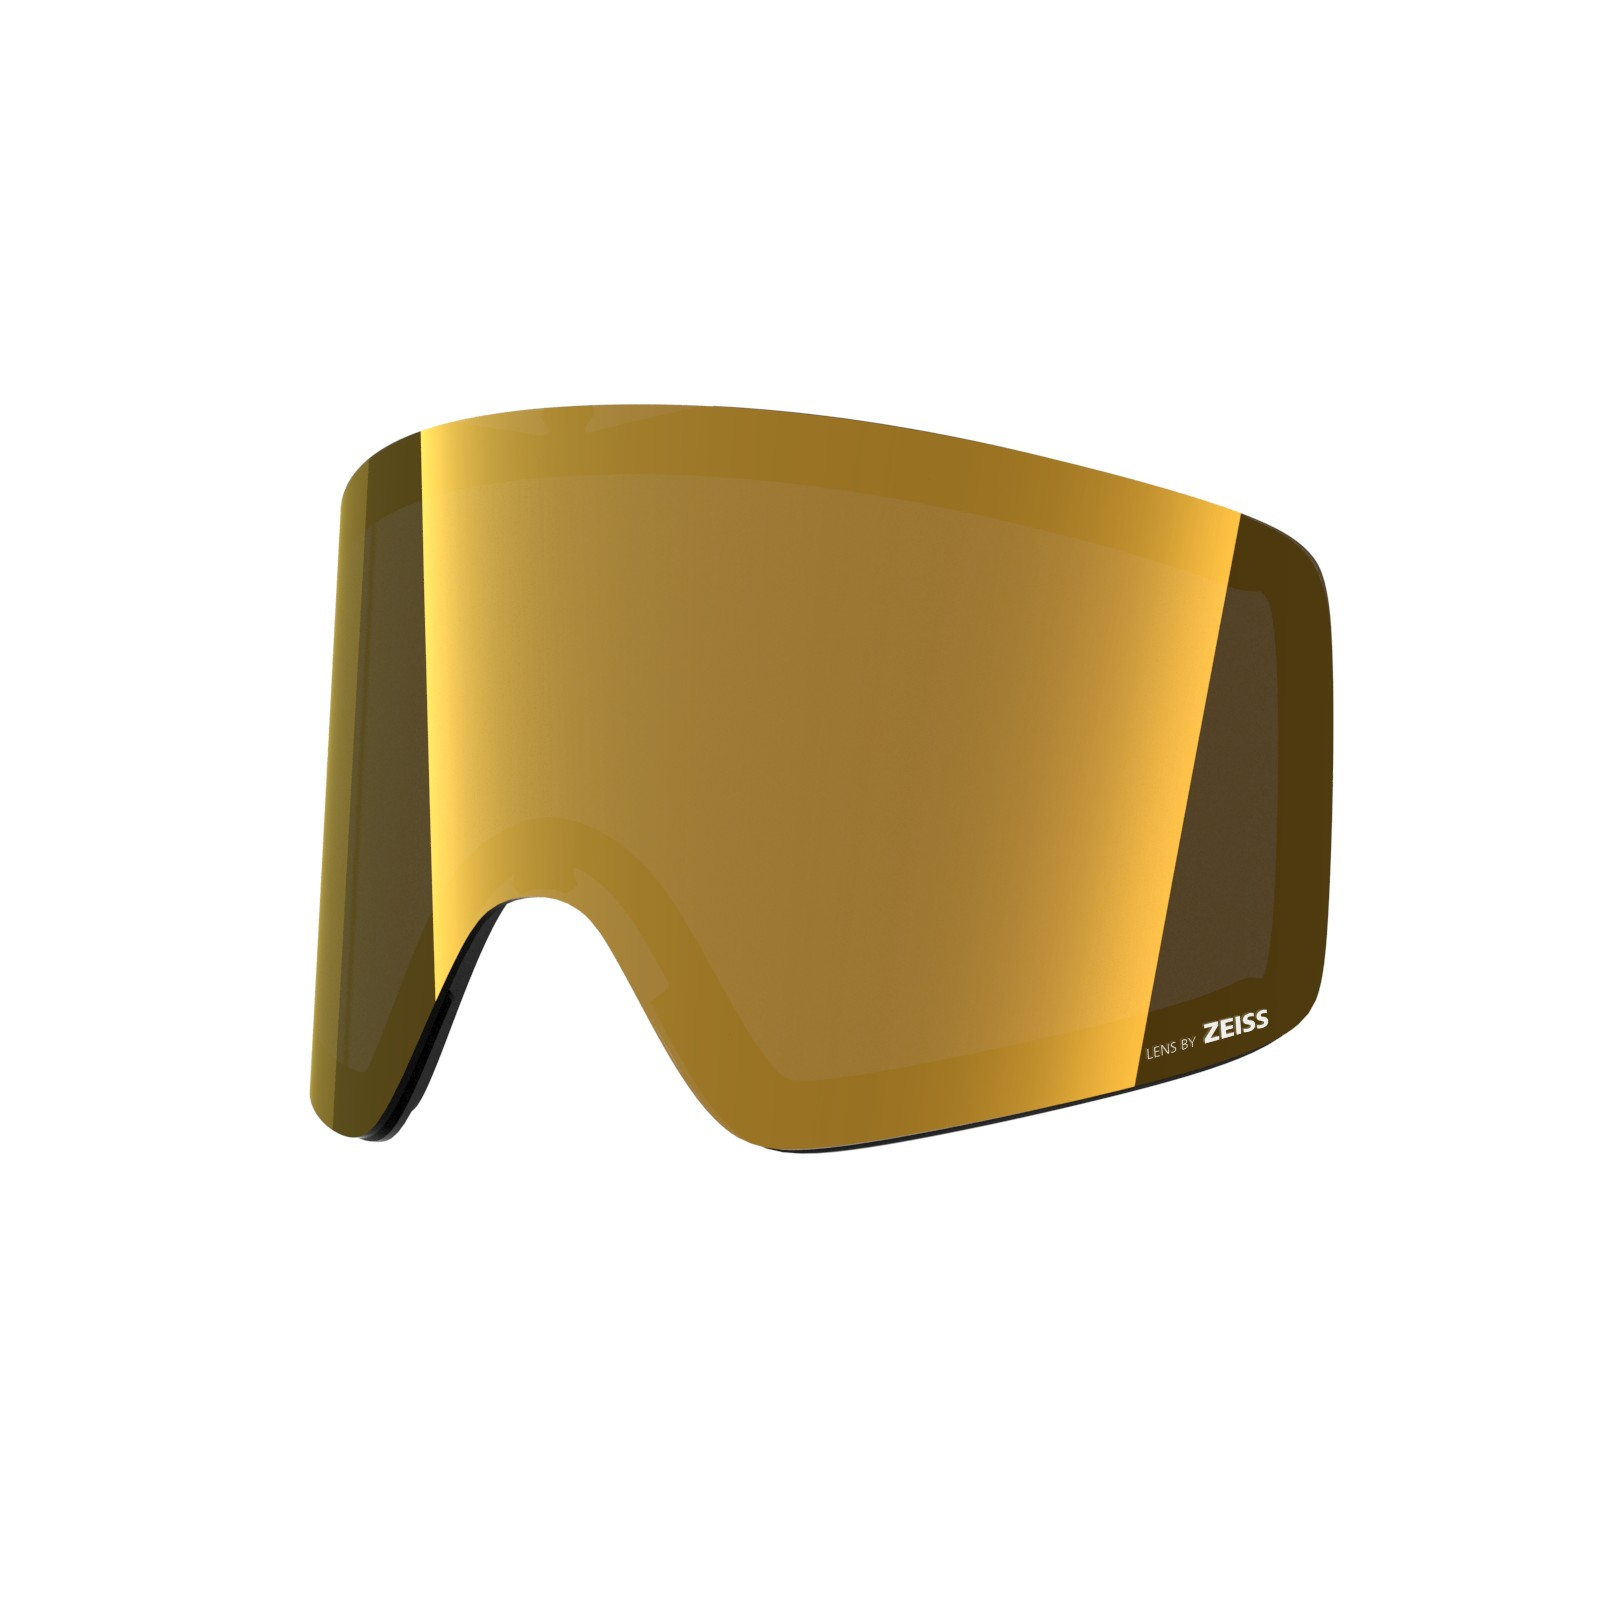 Gold24 MCI lens for  Void goggle